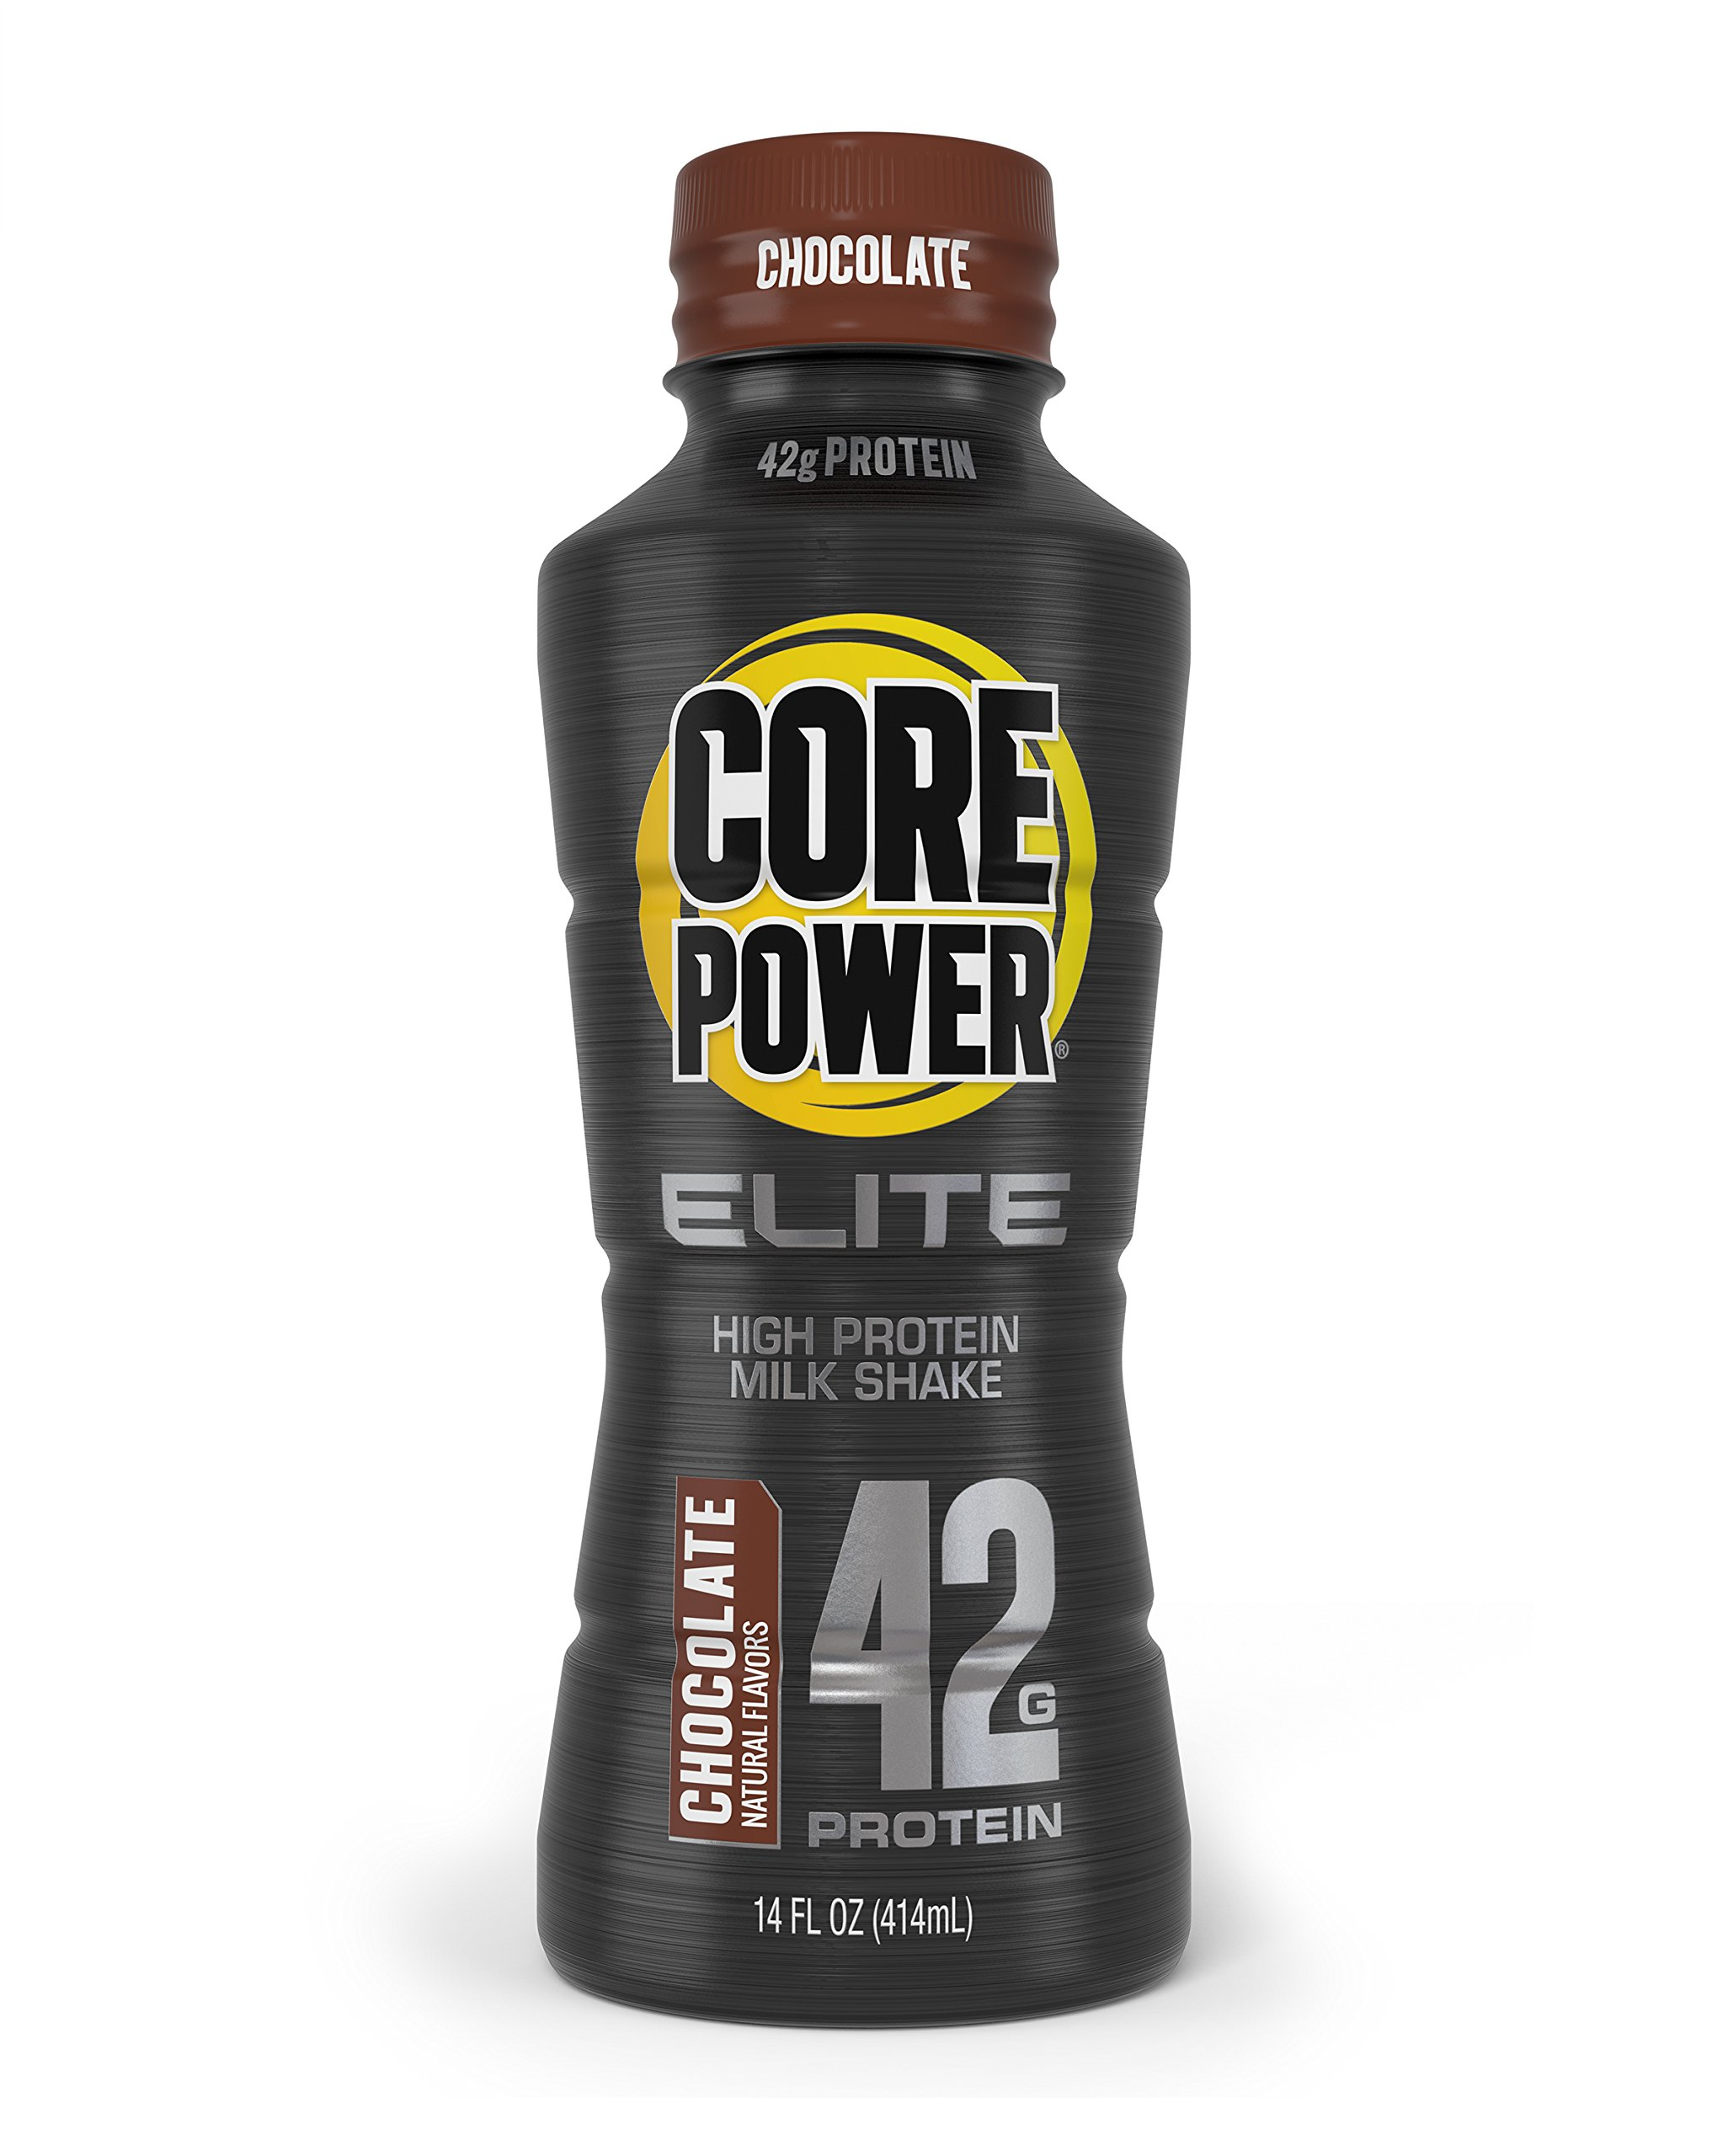 Core Power Elite by fairlife High Protein (42g) Milk Shake, Chocolate, 14-ounce bottles 12 Count